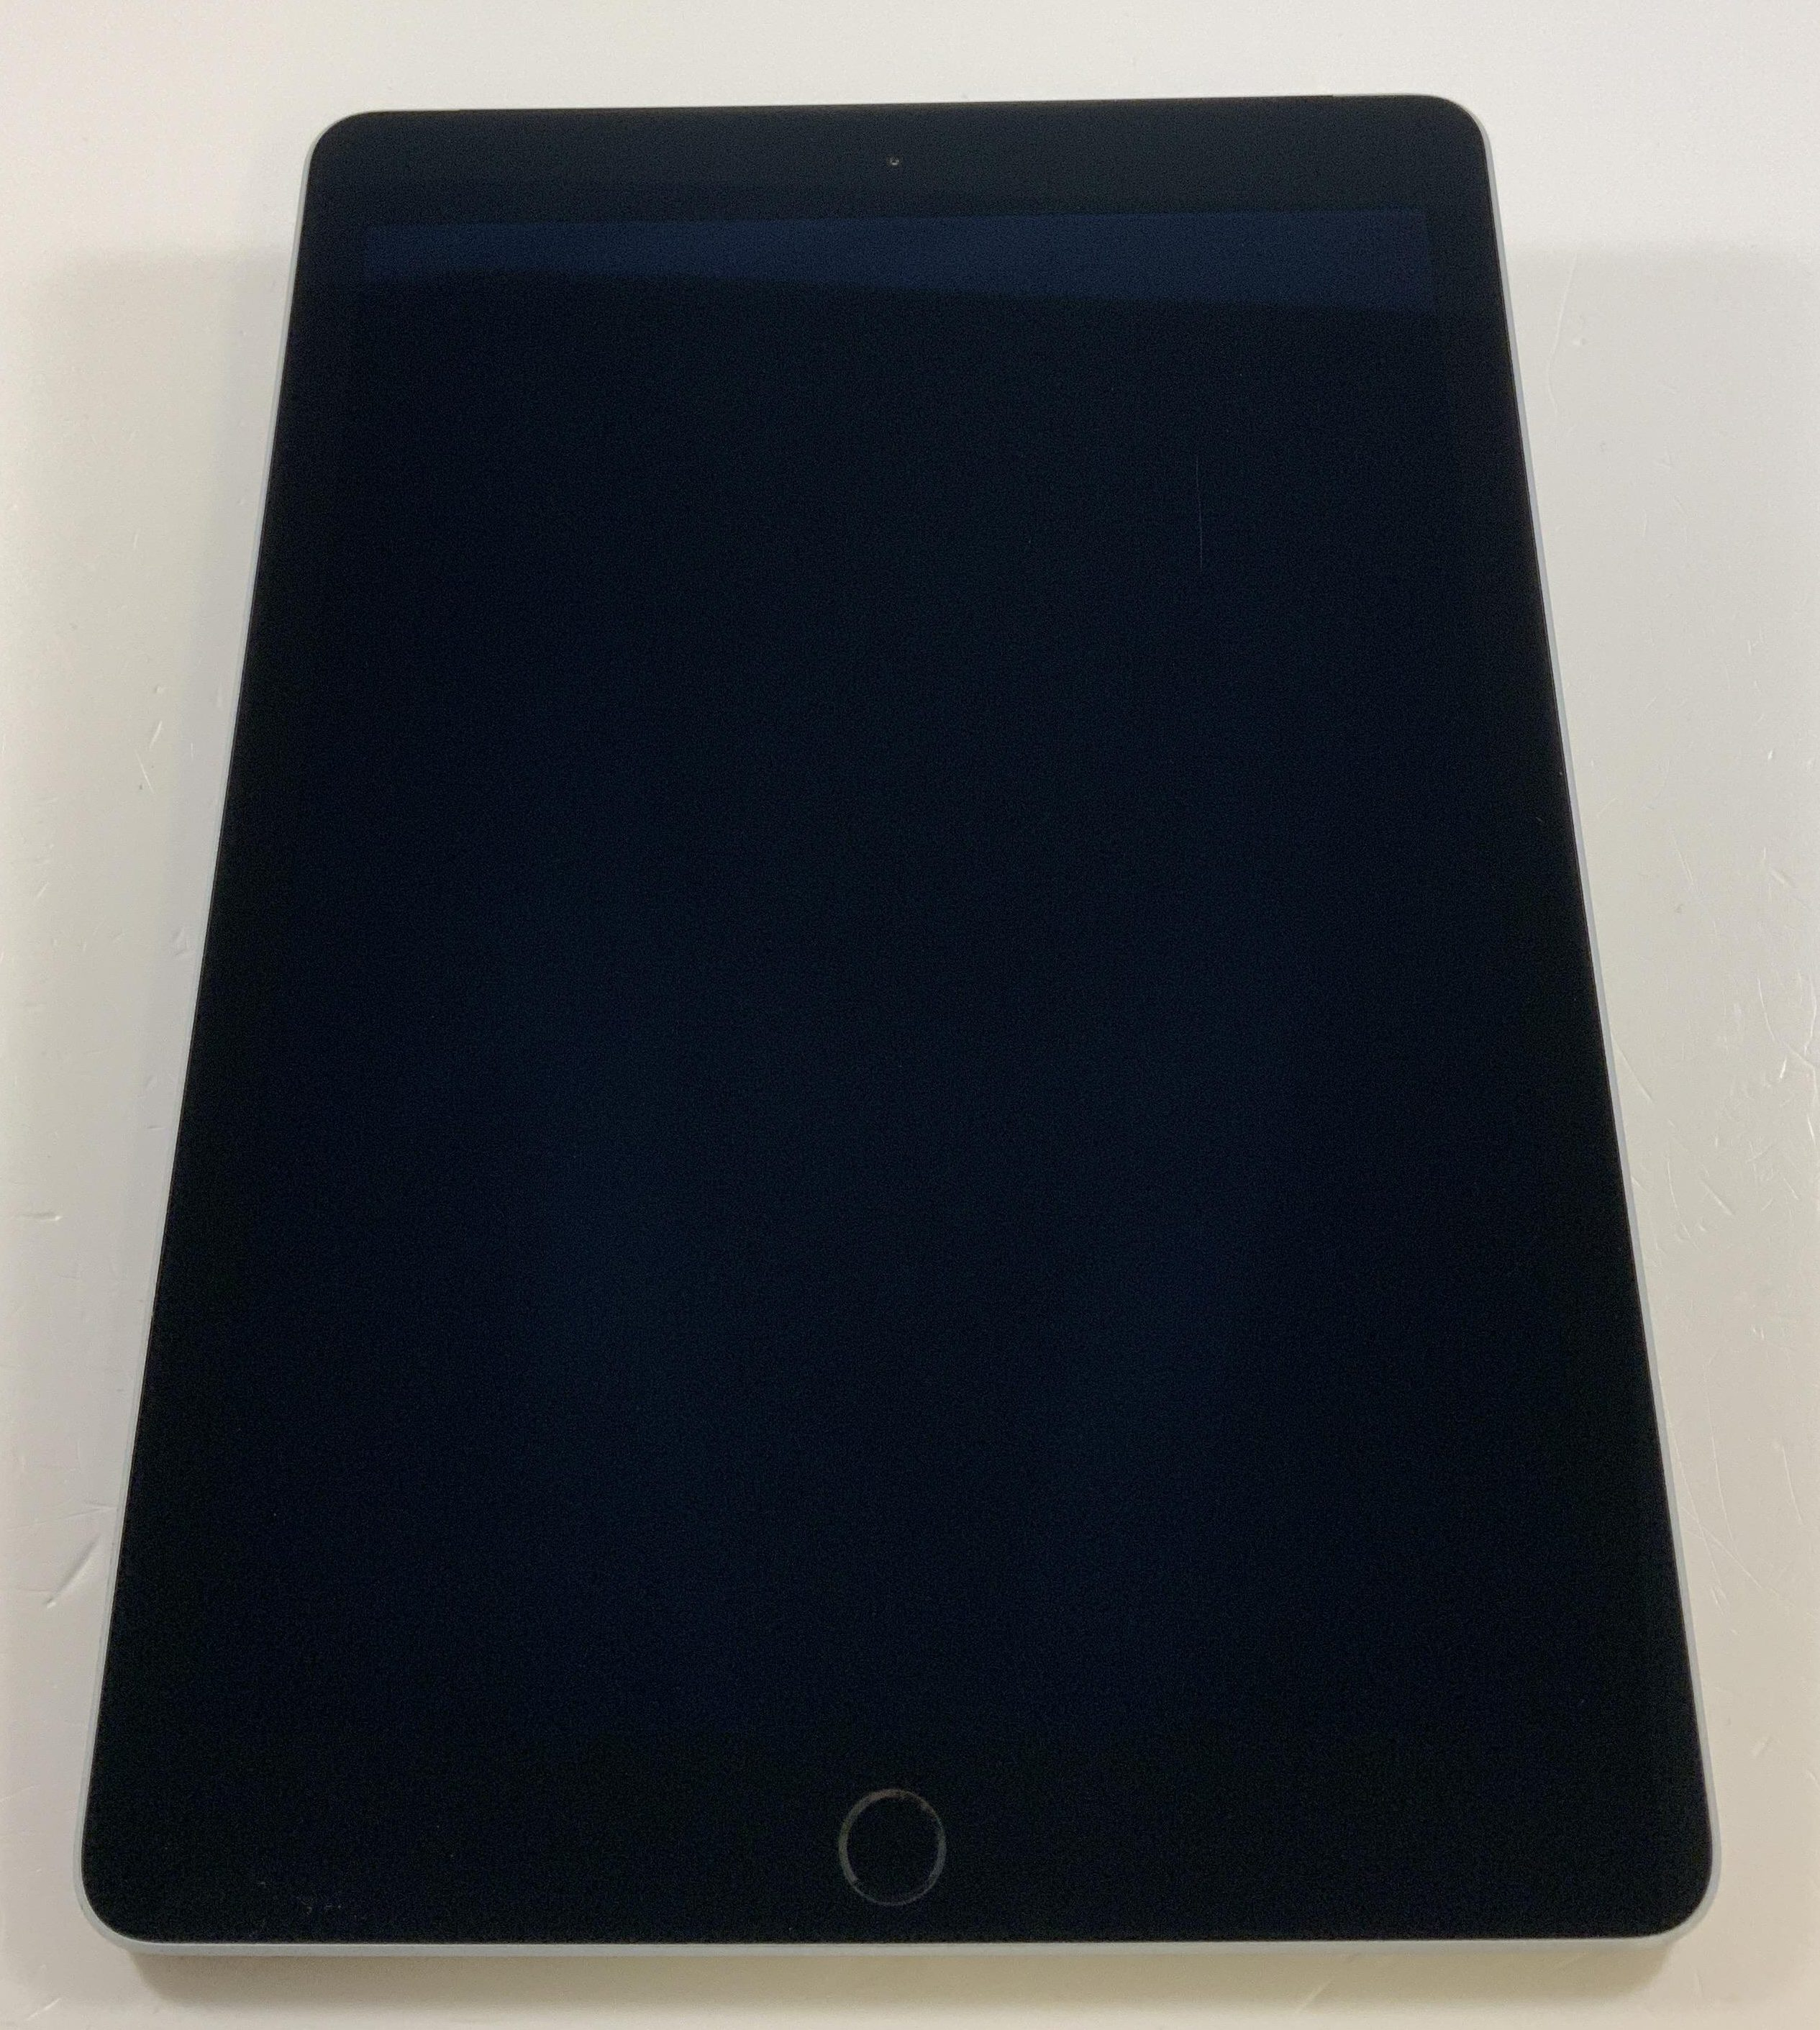 iPad Air 2 Wi-Fi + Cellular 64GB, 64GB, Space Gray, immagine 1